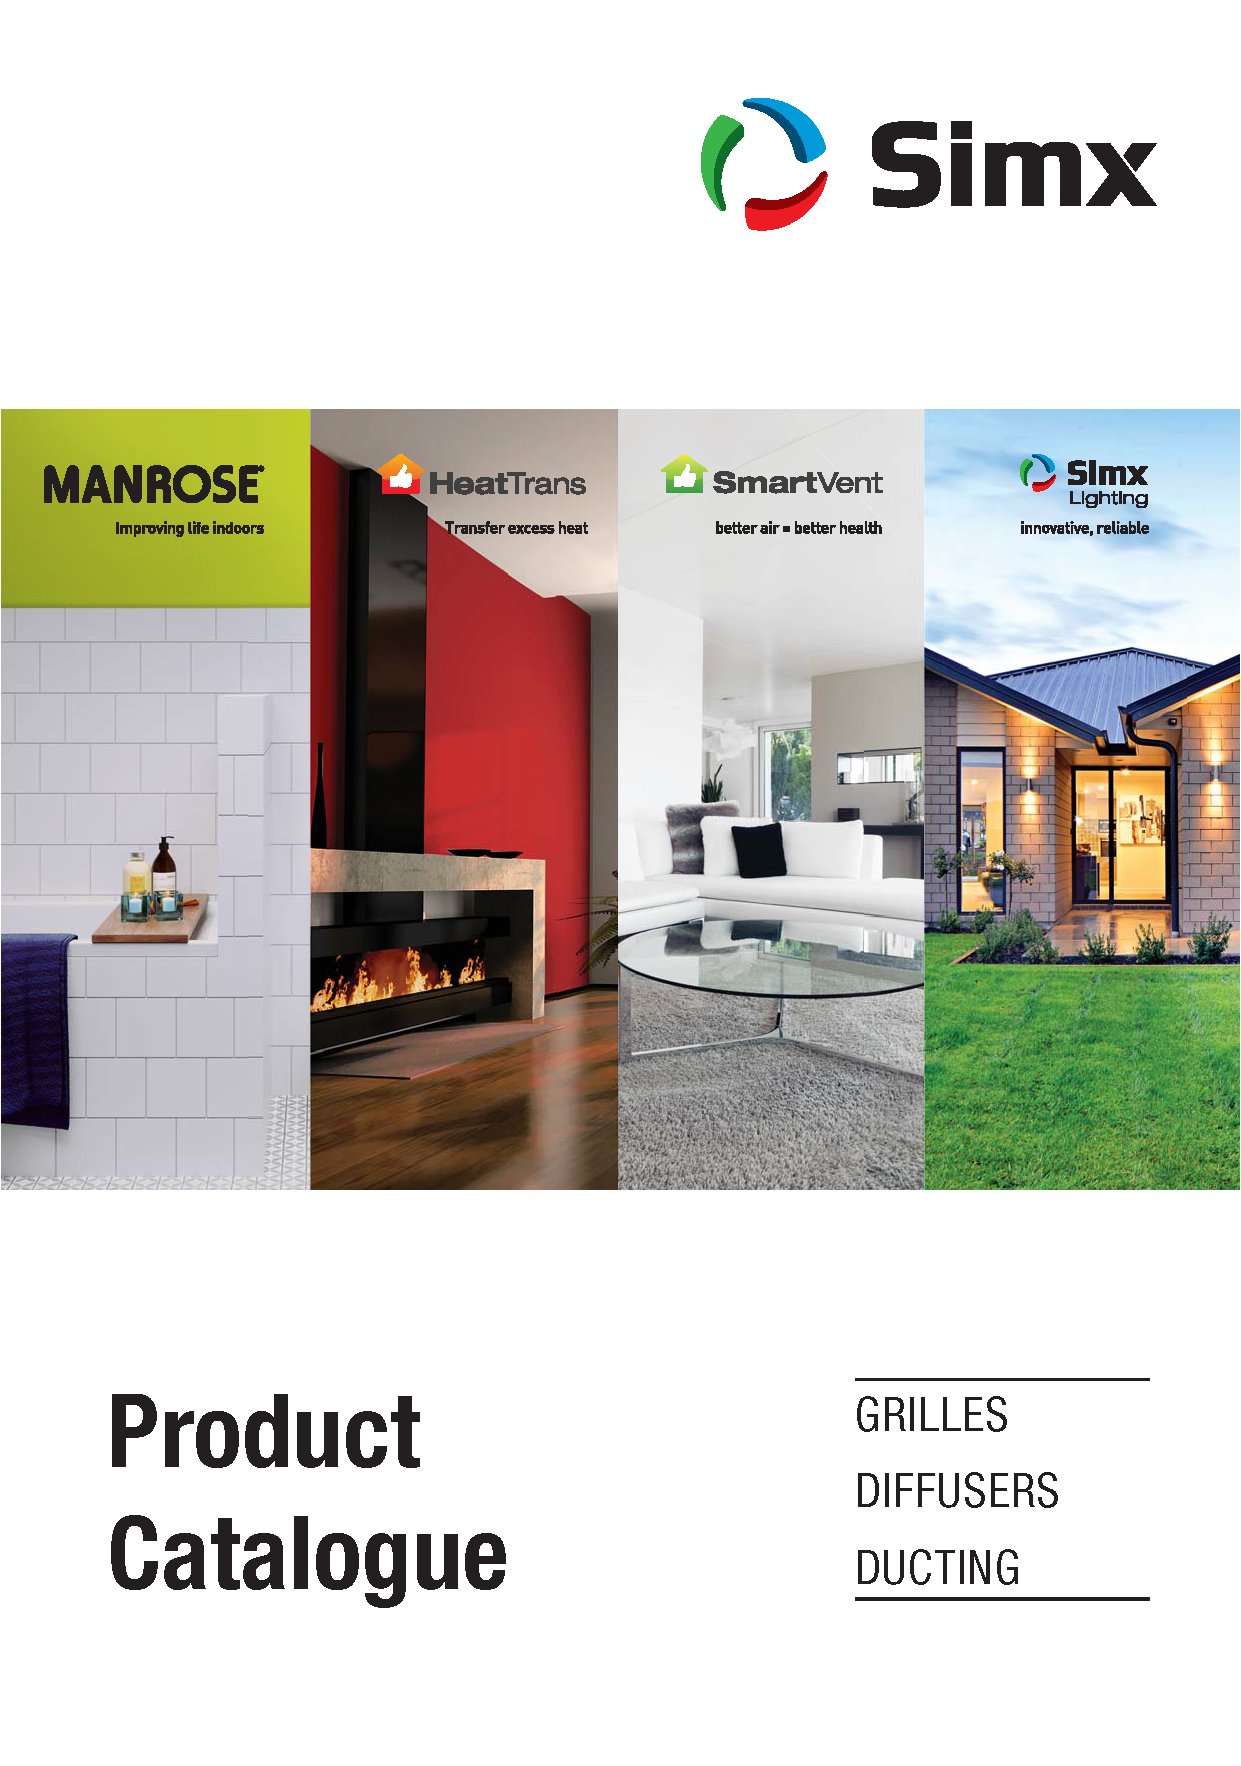 Grilles, Diffusers and Ducting Catalogue